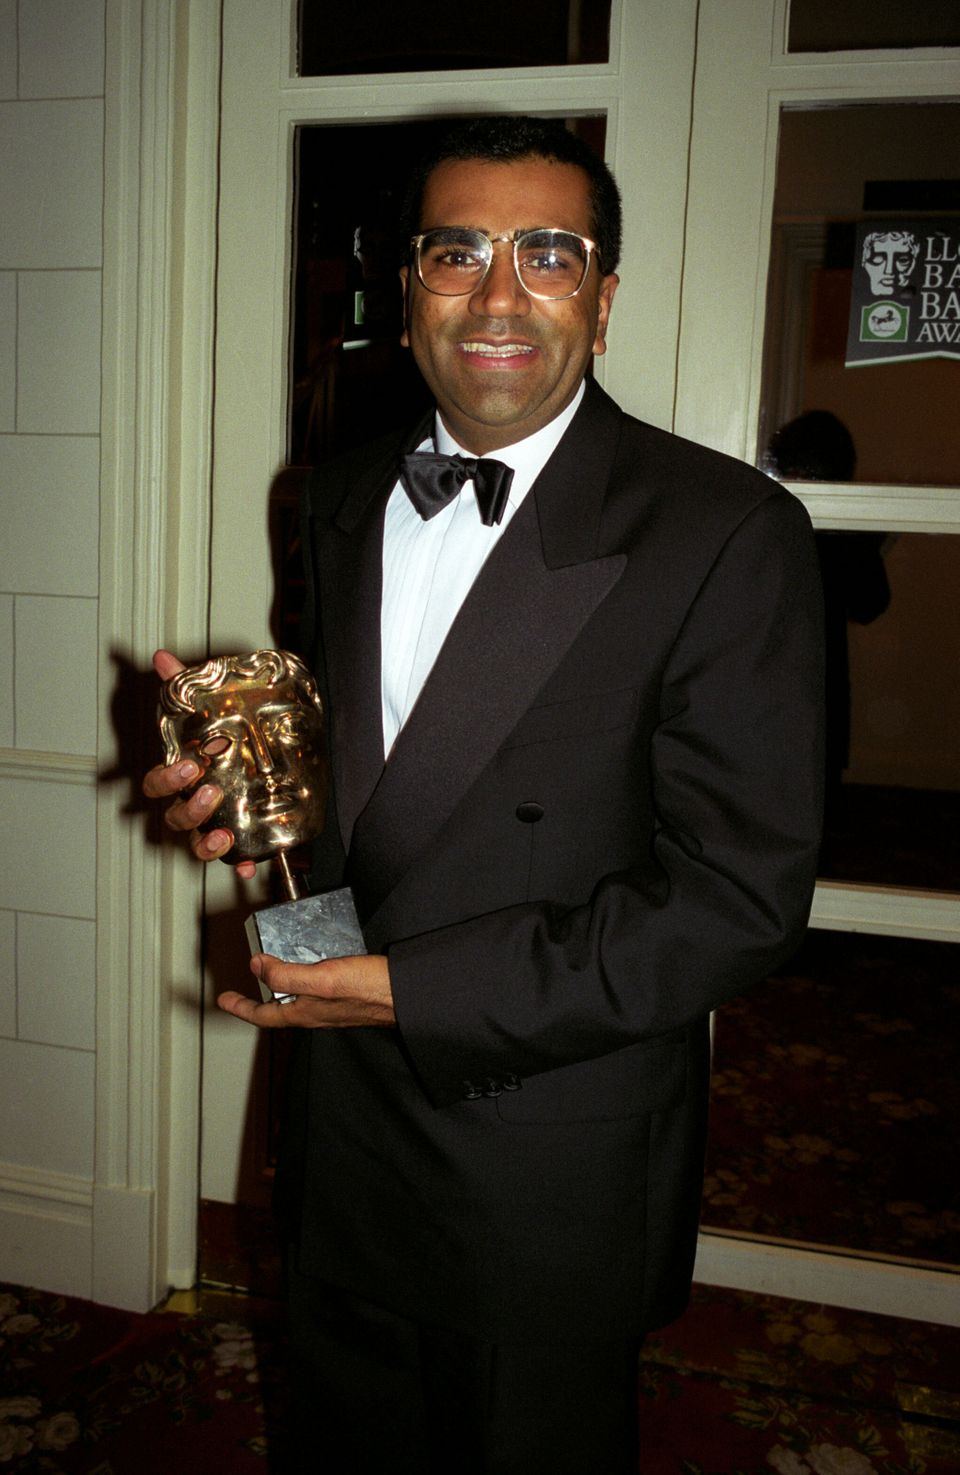 Bashir with his Bafta award for the interview, pictured on 21 April 1996